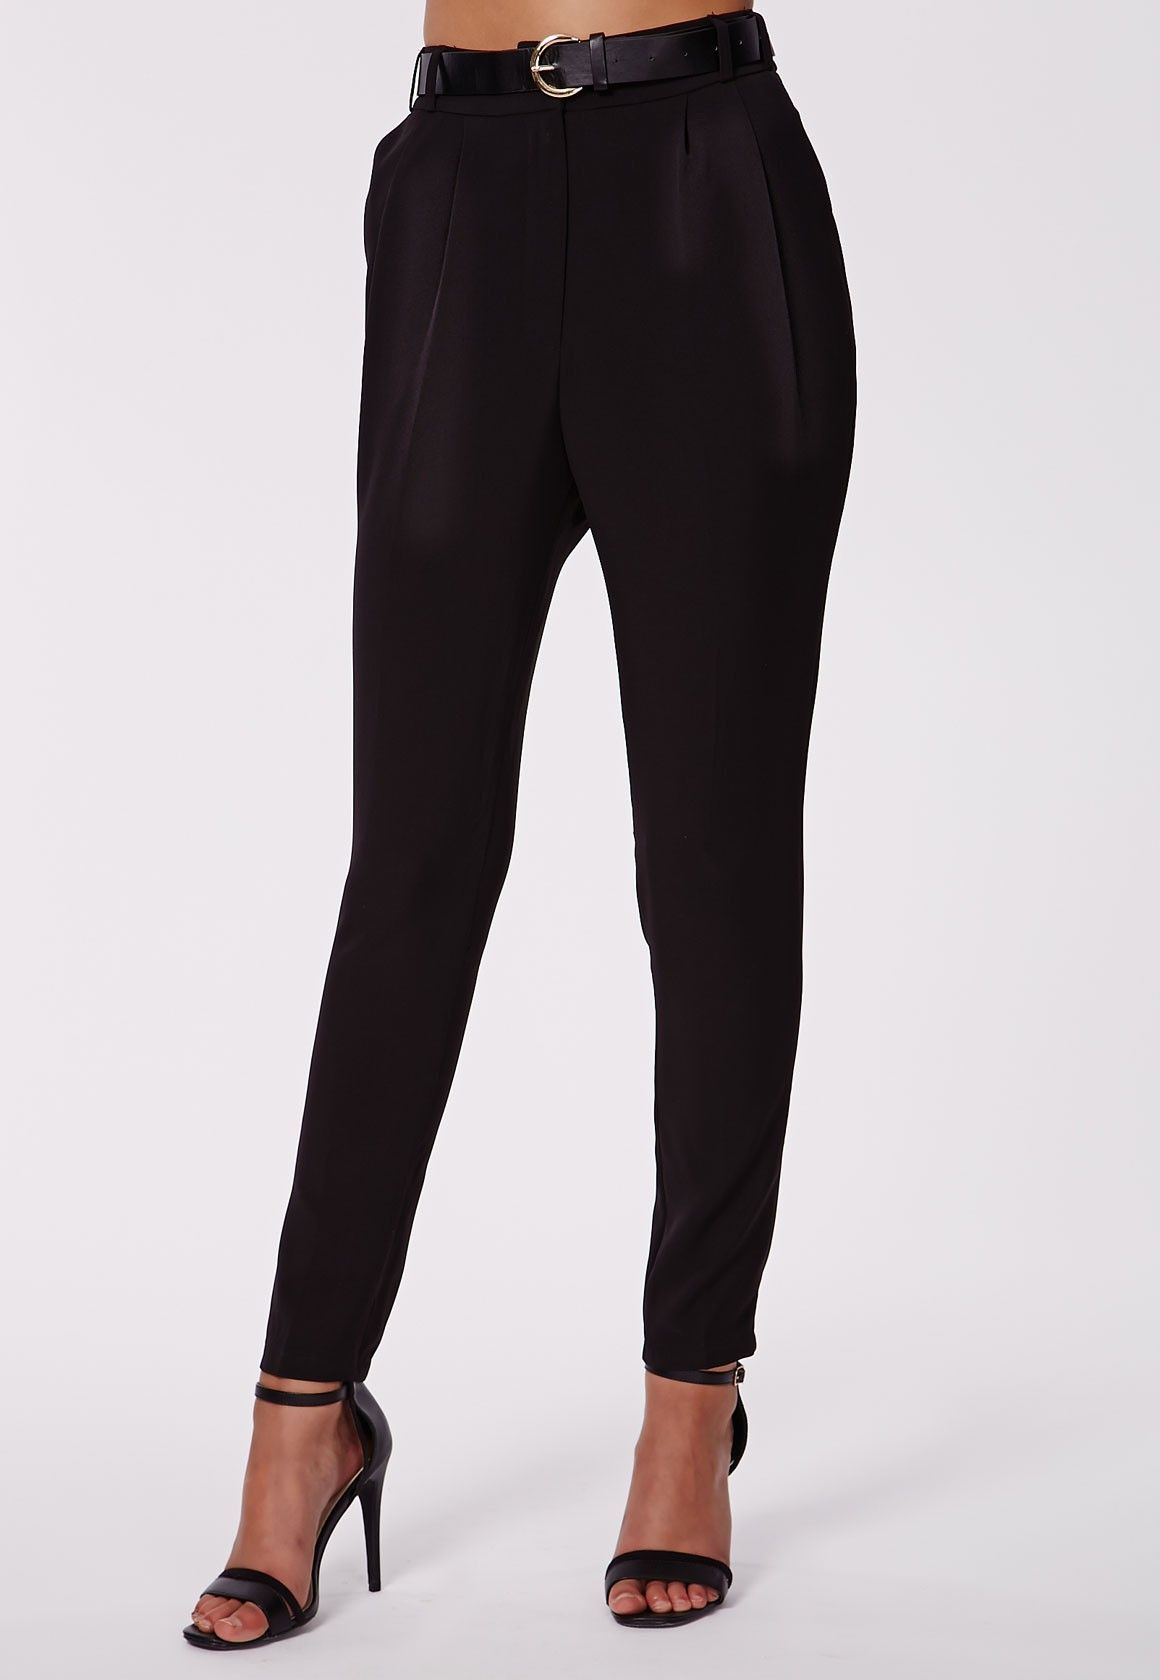 Be the master of effortless dressing with these belted cigarette trousers. Made from a soft touch fabric that drapes in all the right areas, classic and tailored. These trousers are exactly what your wardrobe's been missing and with a fit t...